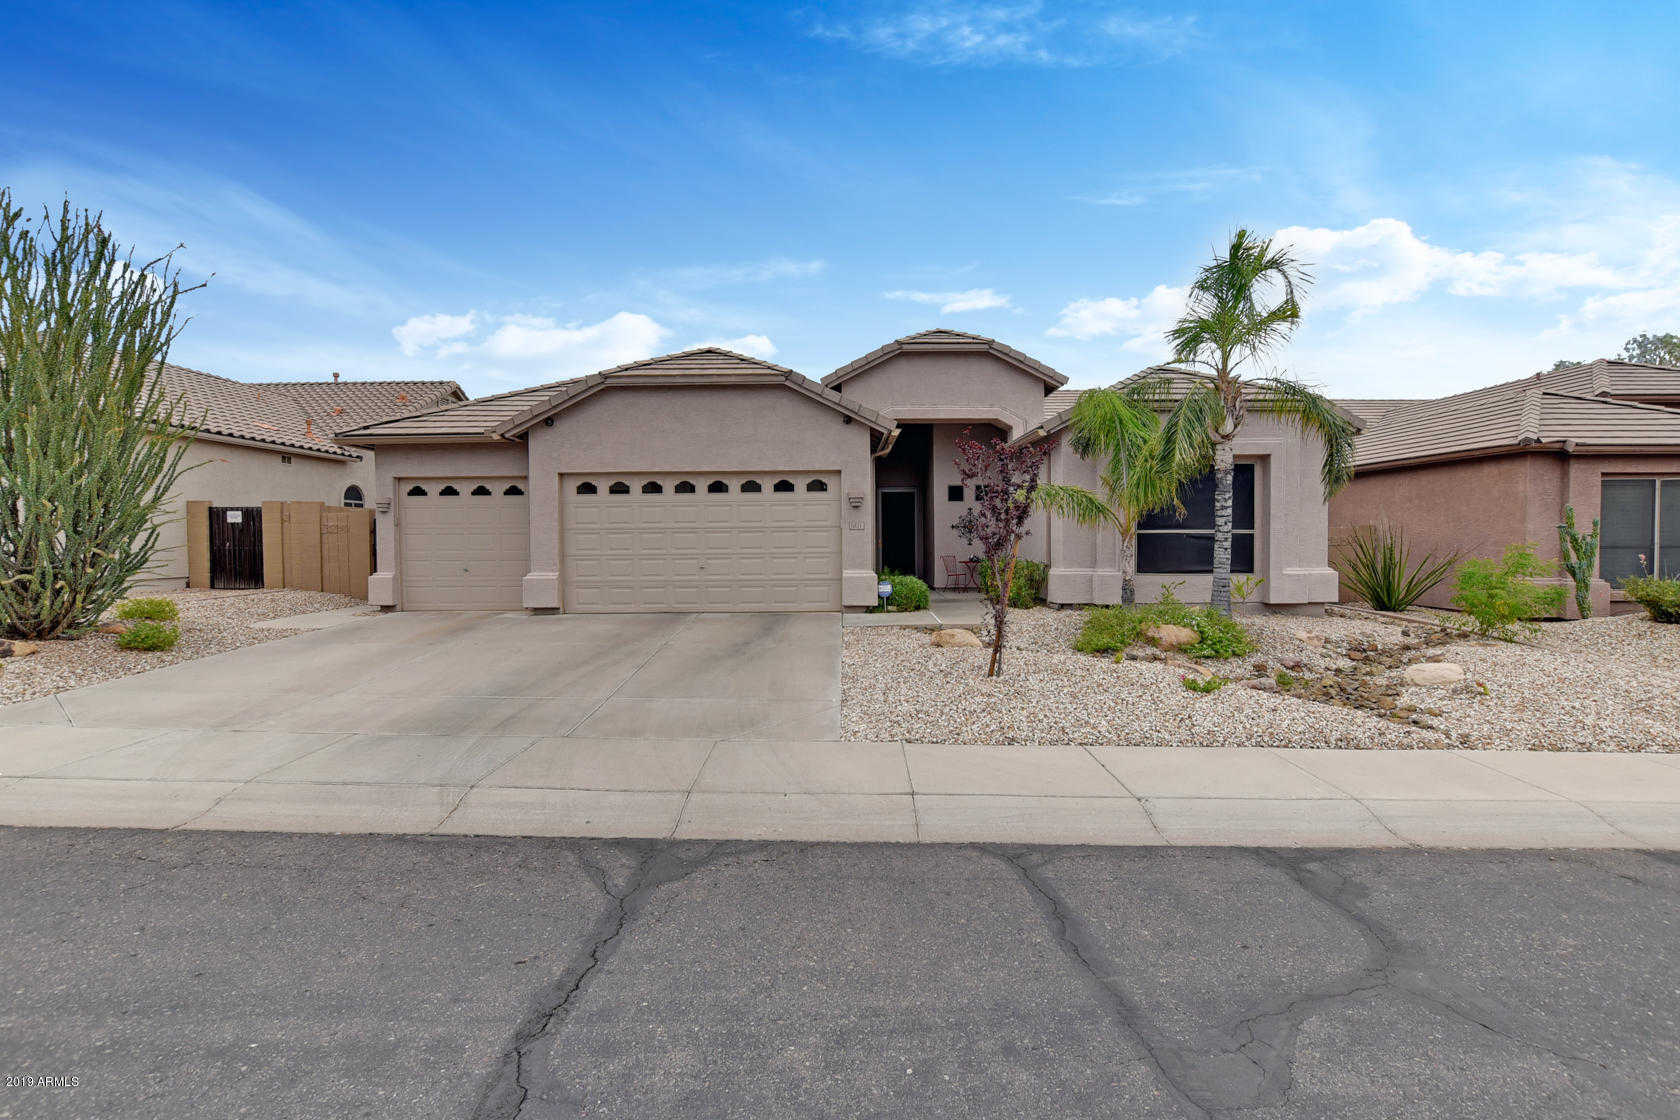 $410,000 - 4Br/2Ba - Home for Sale in Chaminade, Glendale